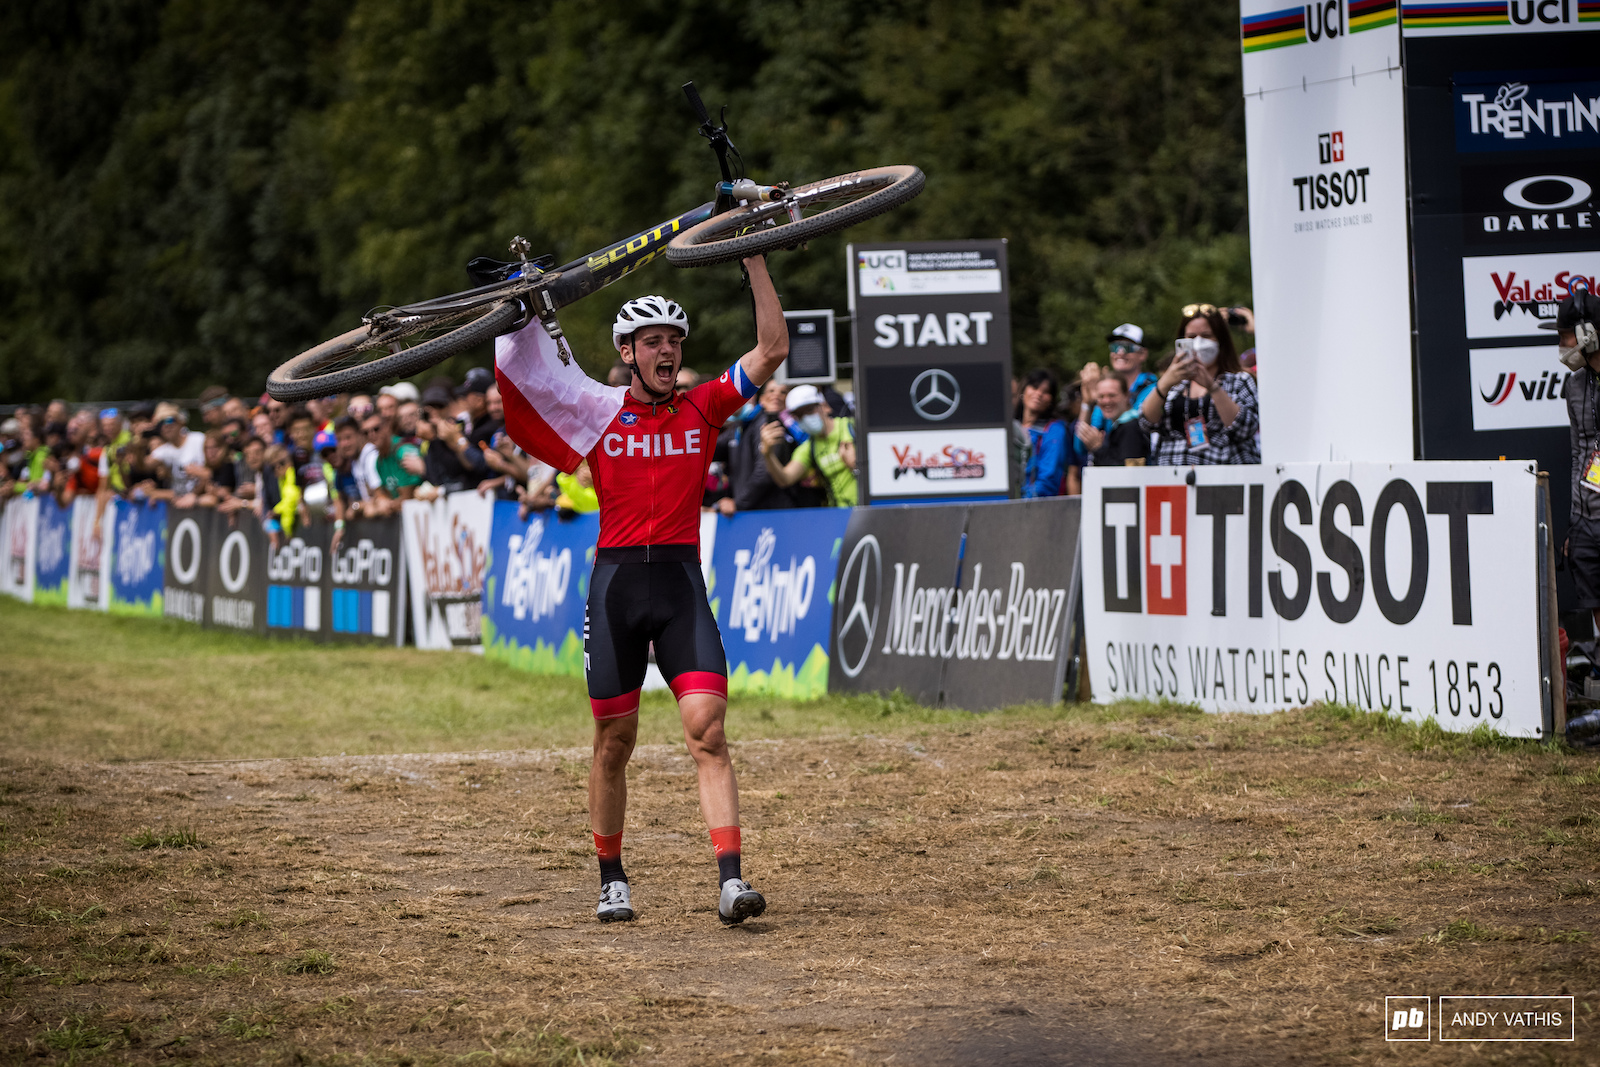 Martin Vidaurre Kossmann across the line with bike way in the air.